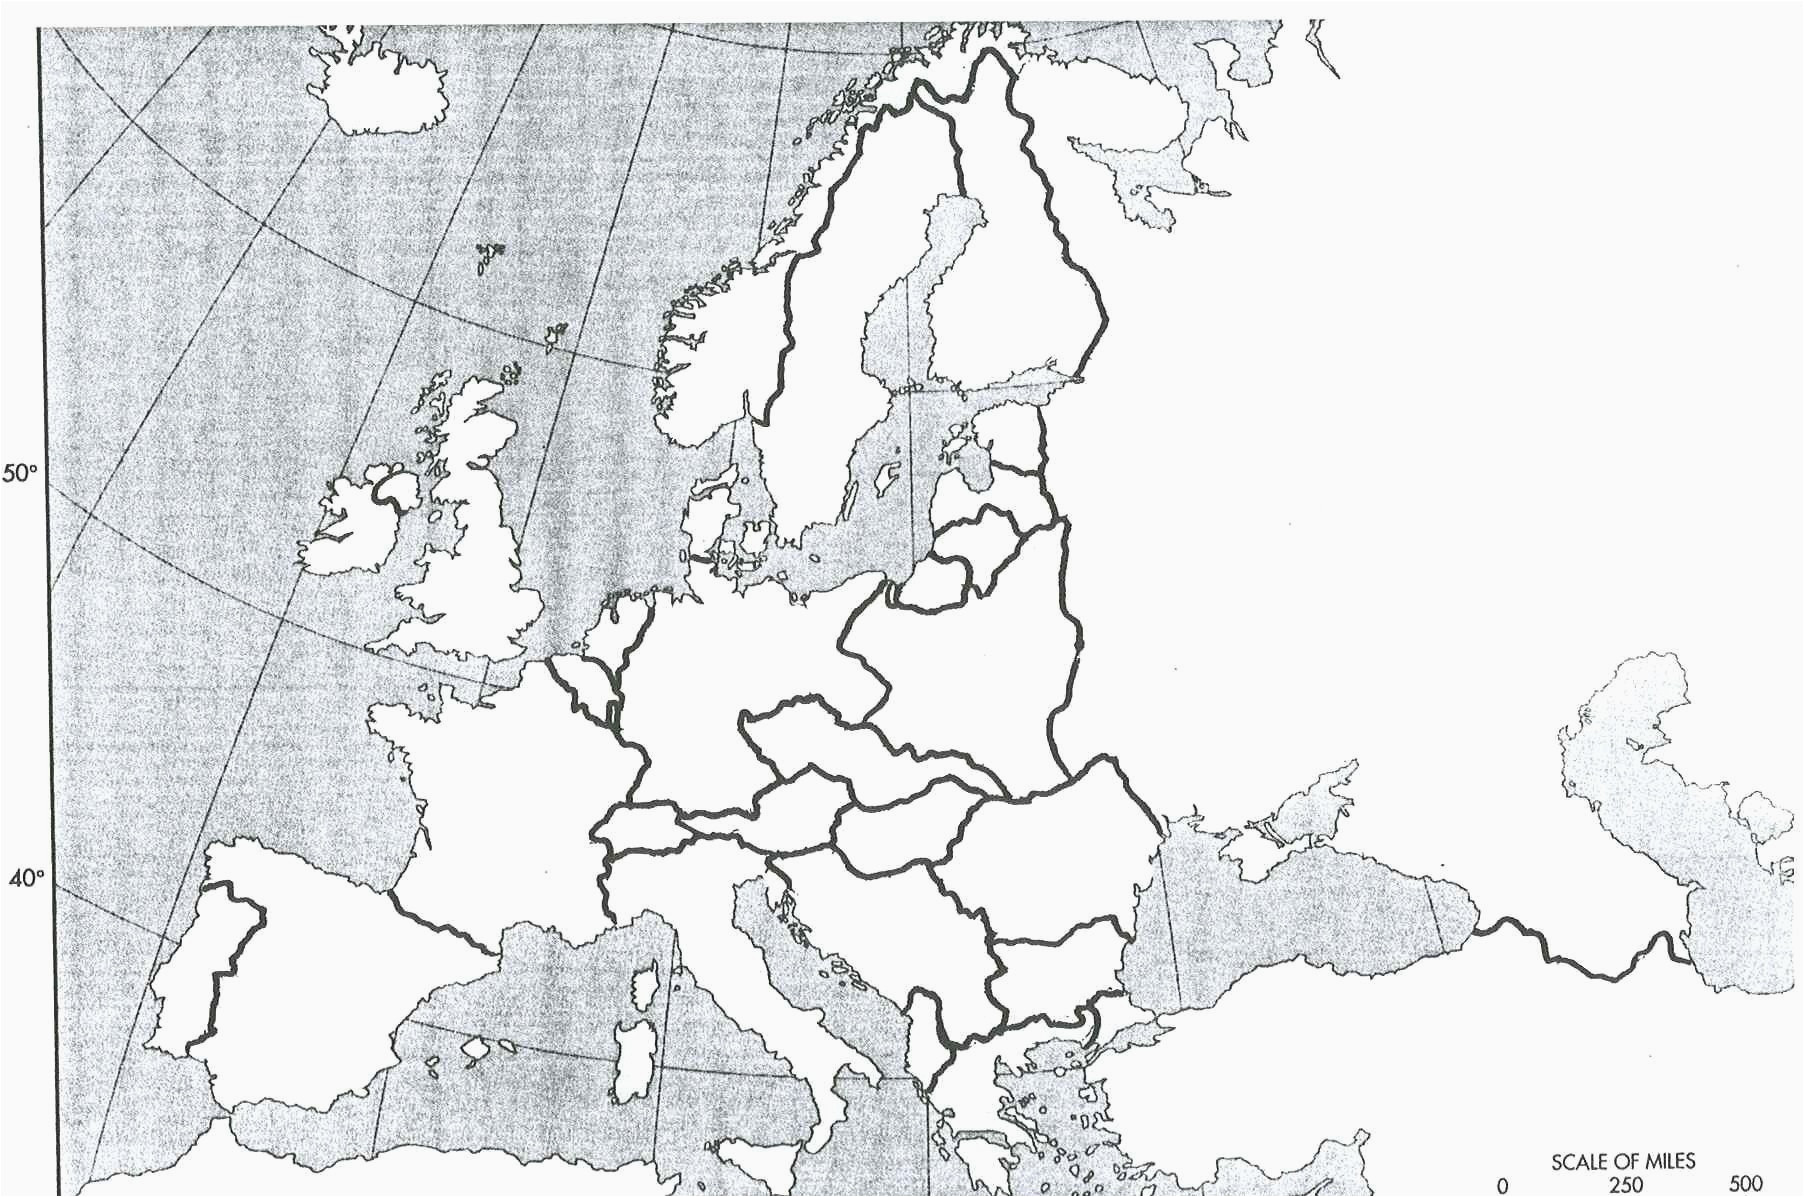 Europe Map with Scale Five Continents the World Best Europe In World War 1 Map